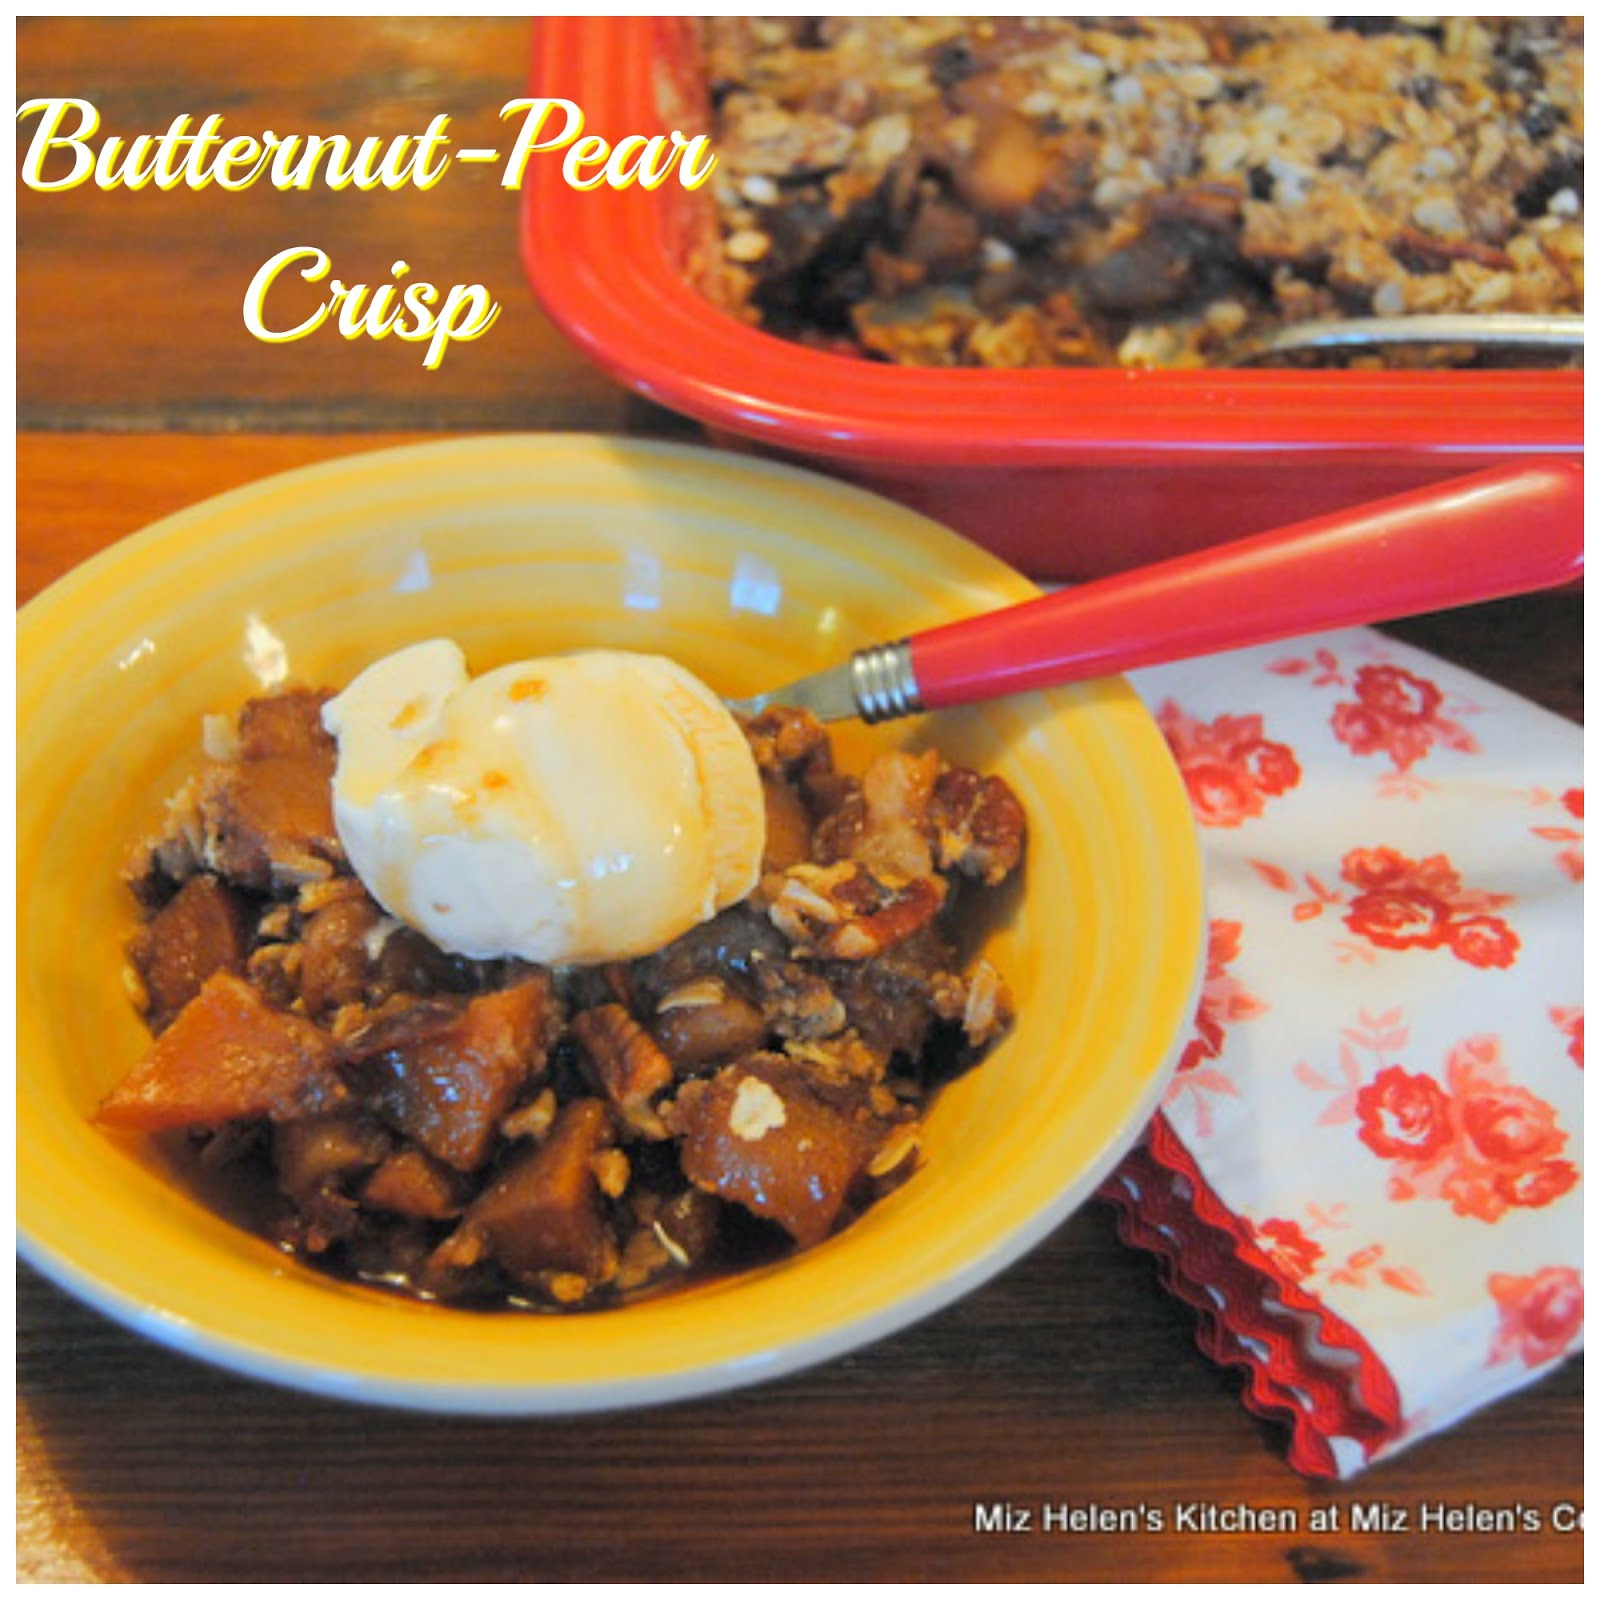 Butternut-Pear Crisp